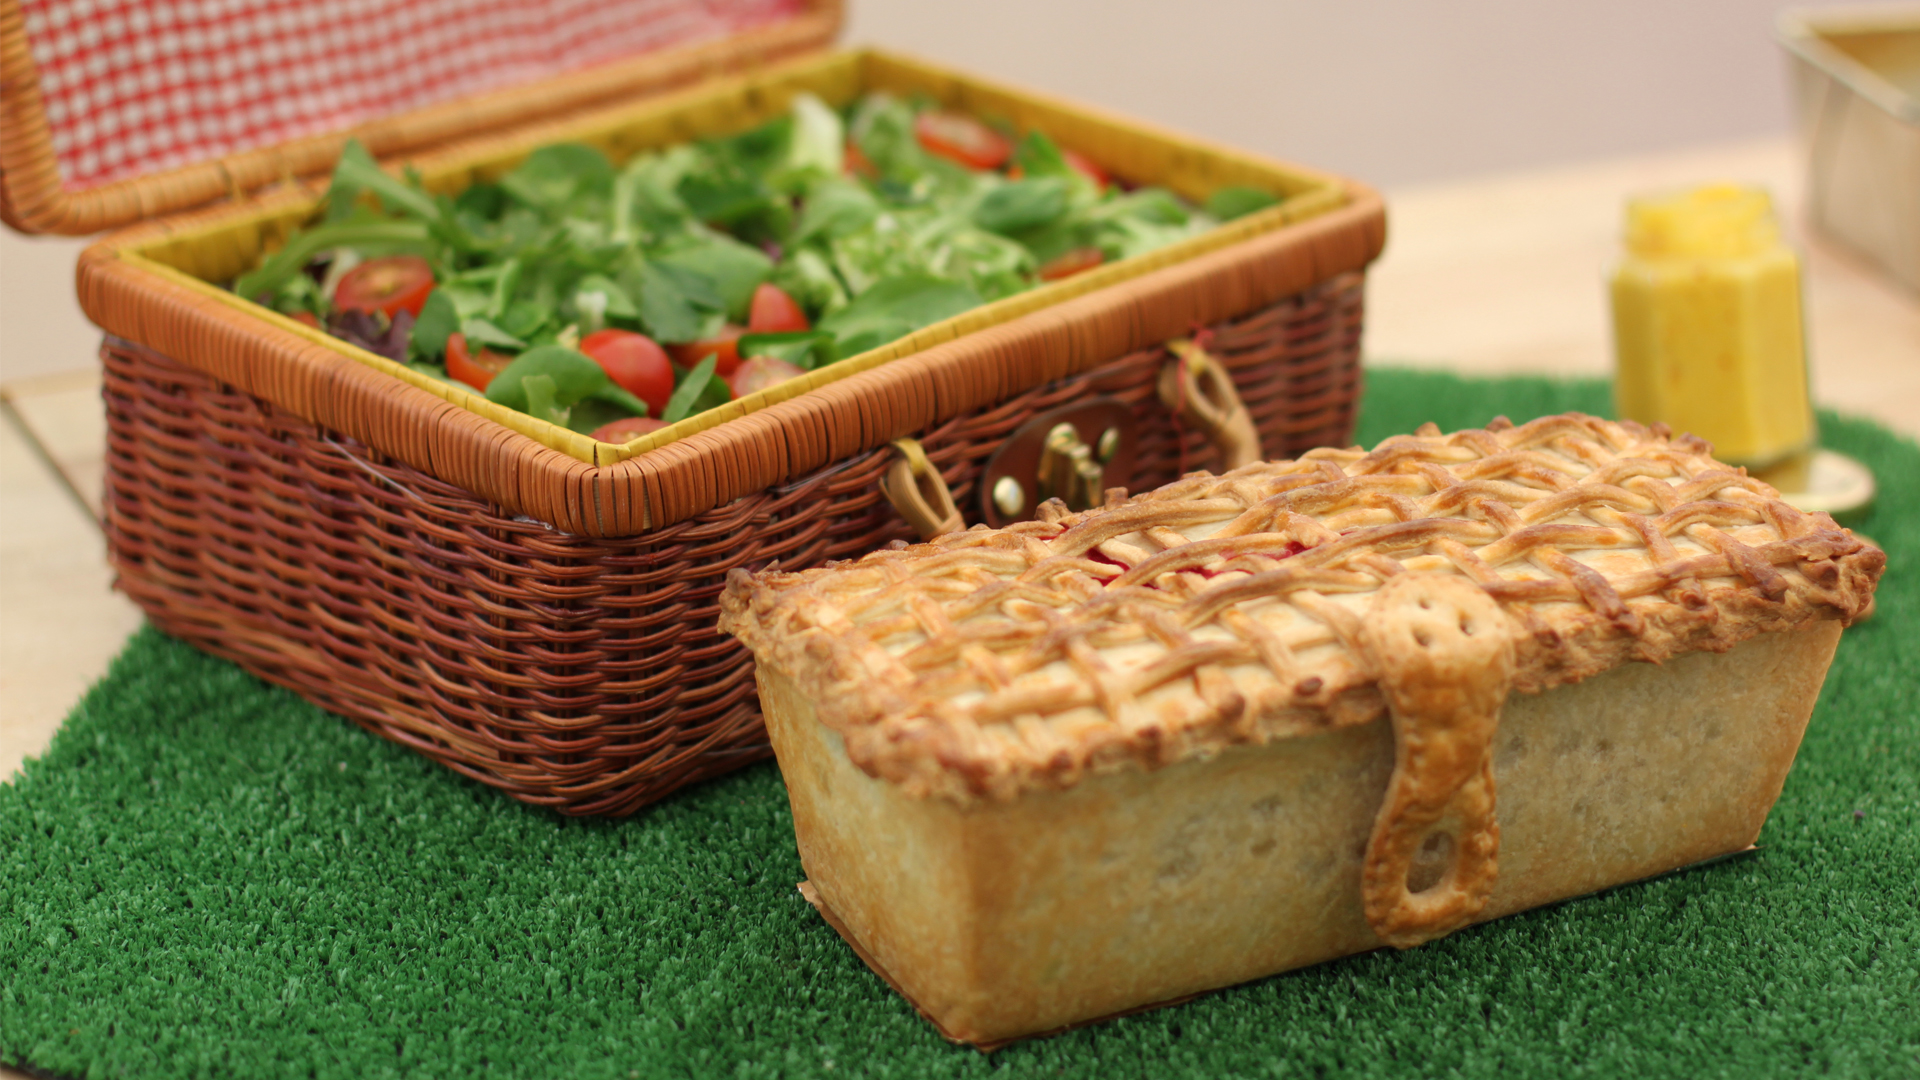 Picnic Basket Pie : Picnic basket pie recipe pbs food